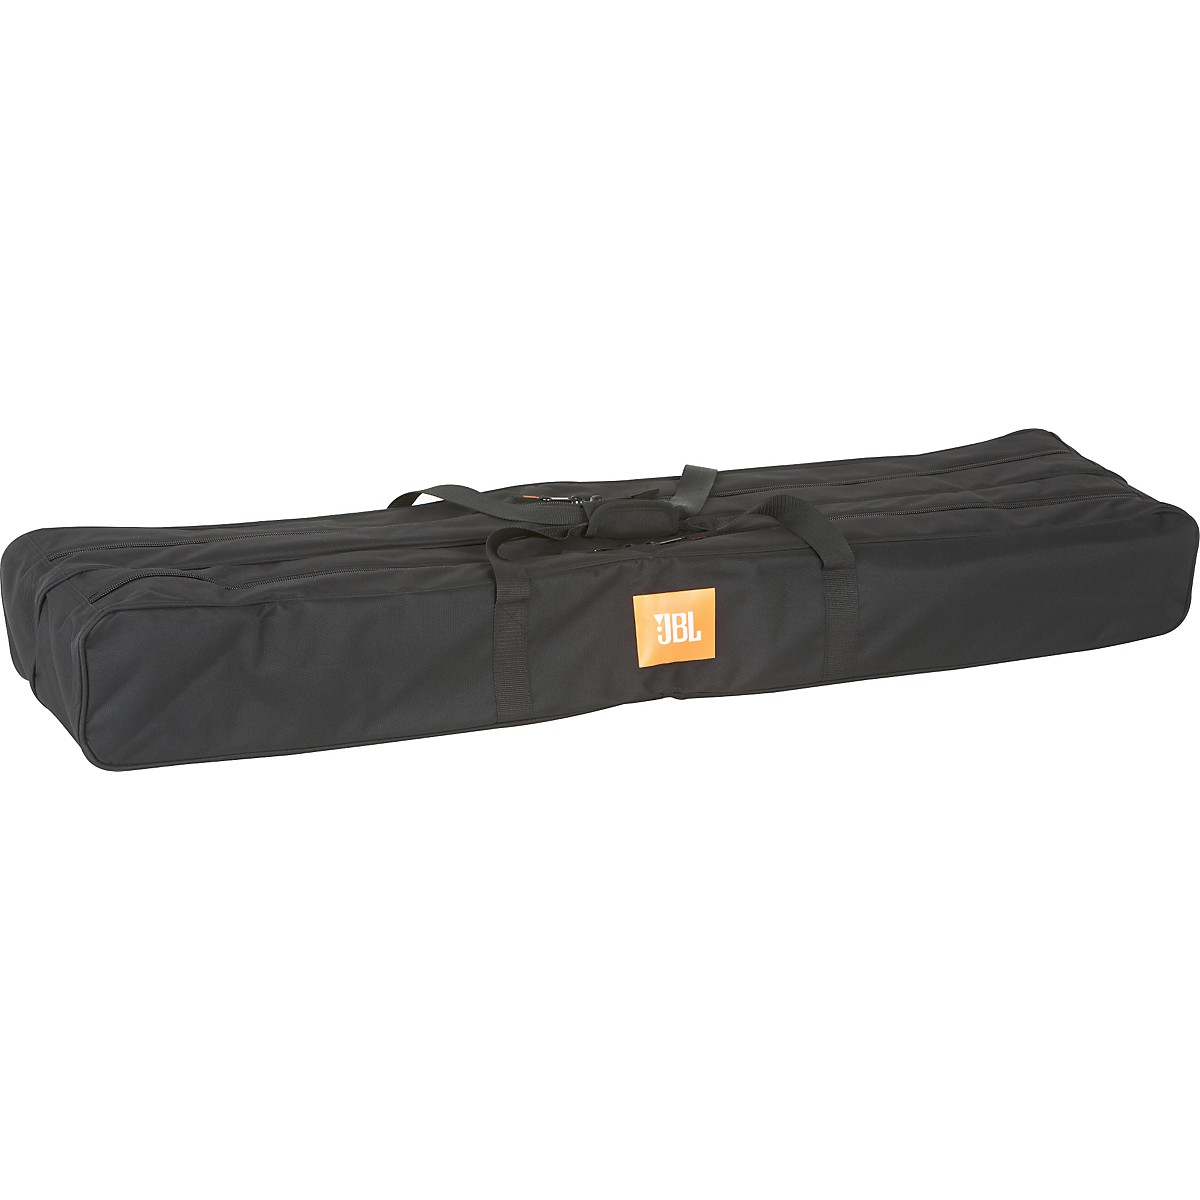 JBL Tripod/Pole Mount Bag